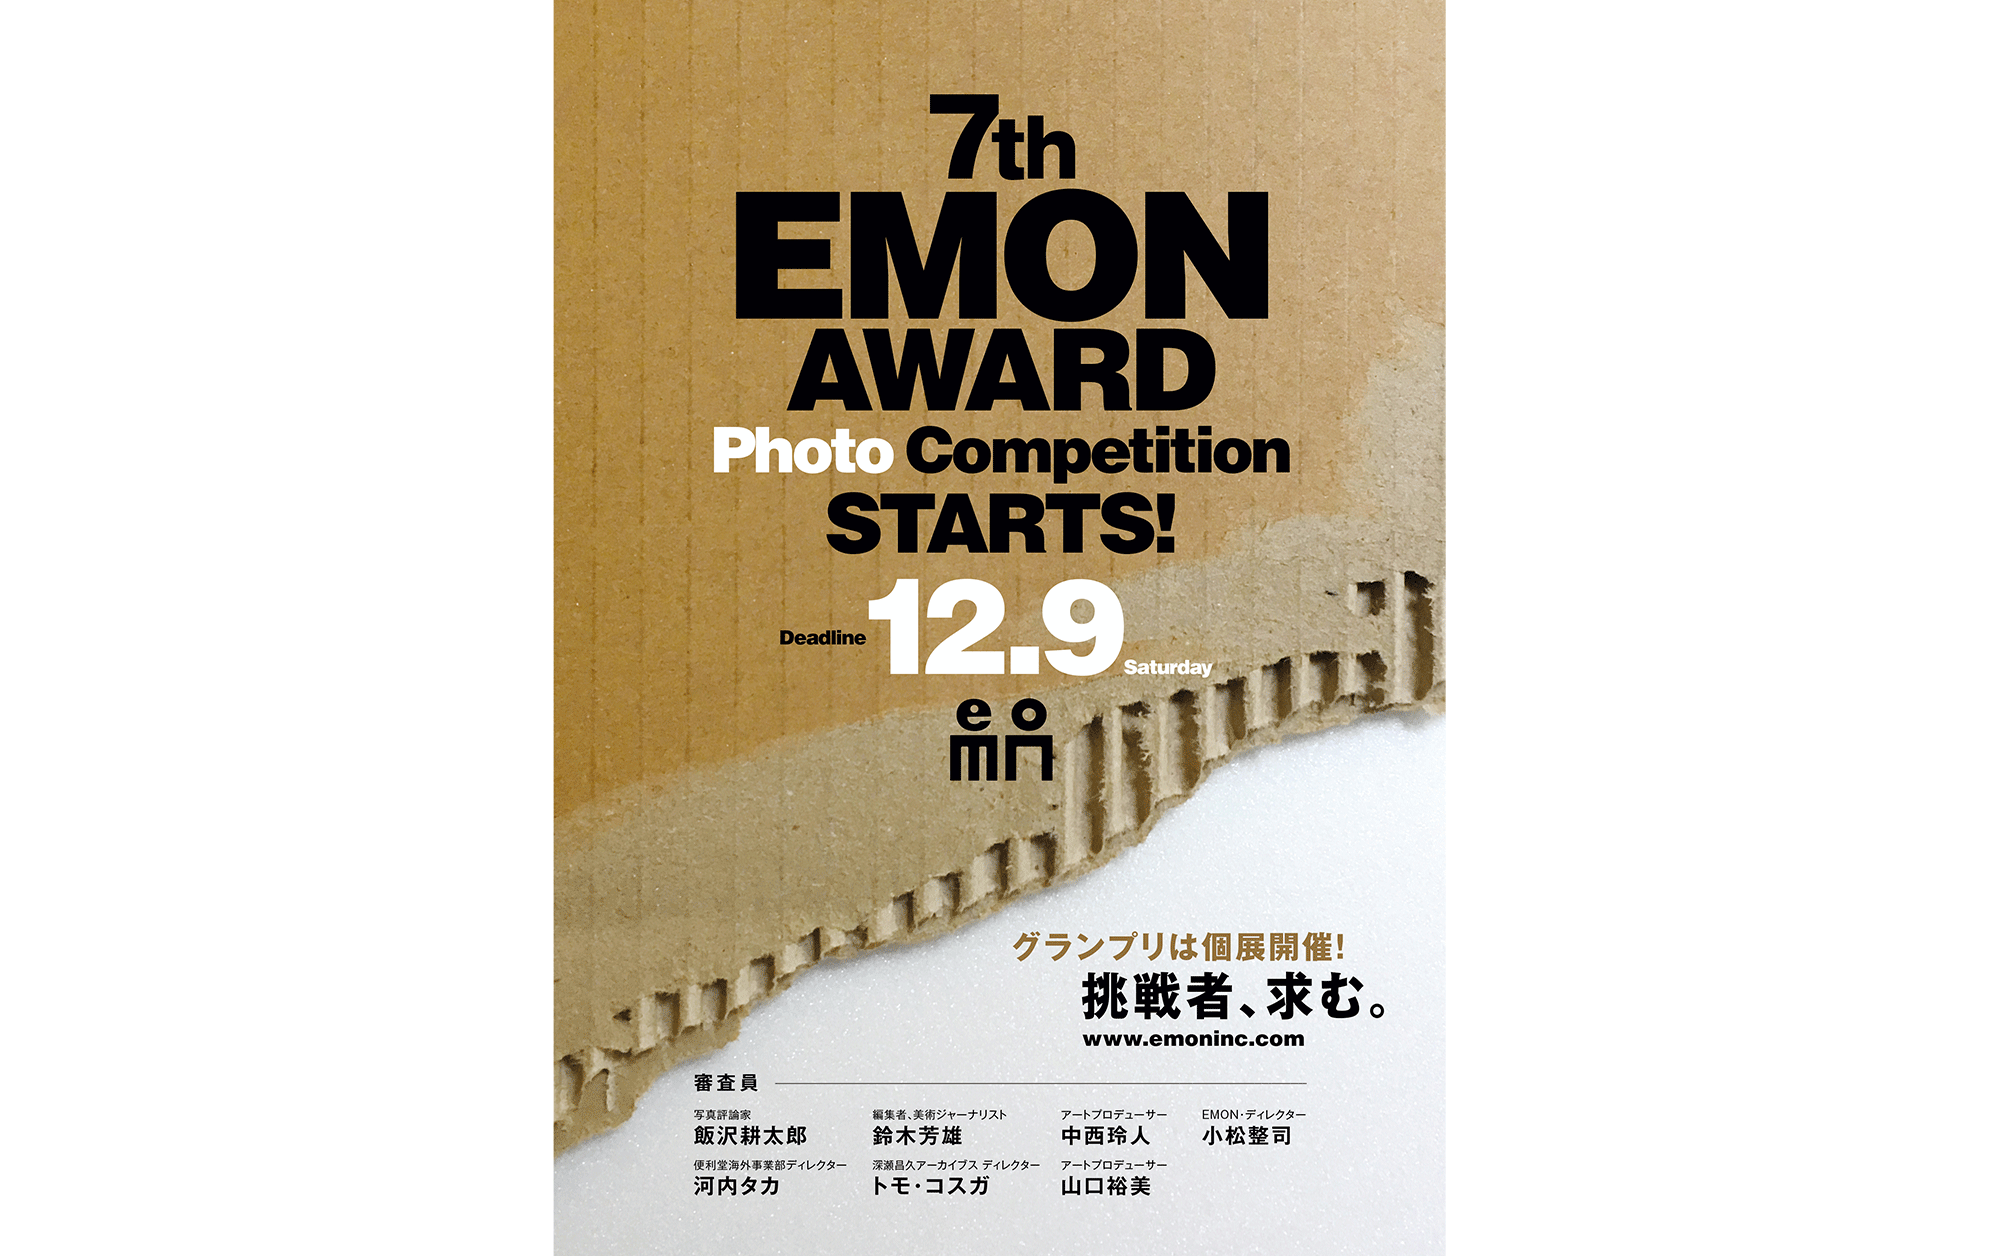 7th EMON AWARD